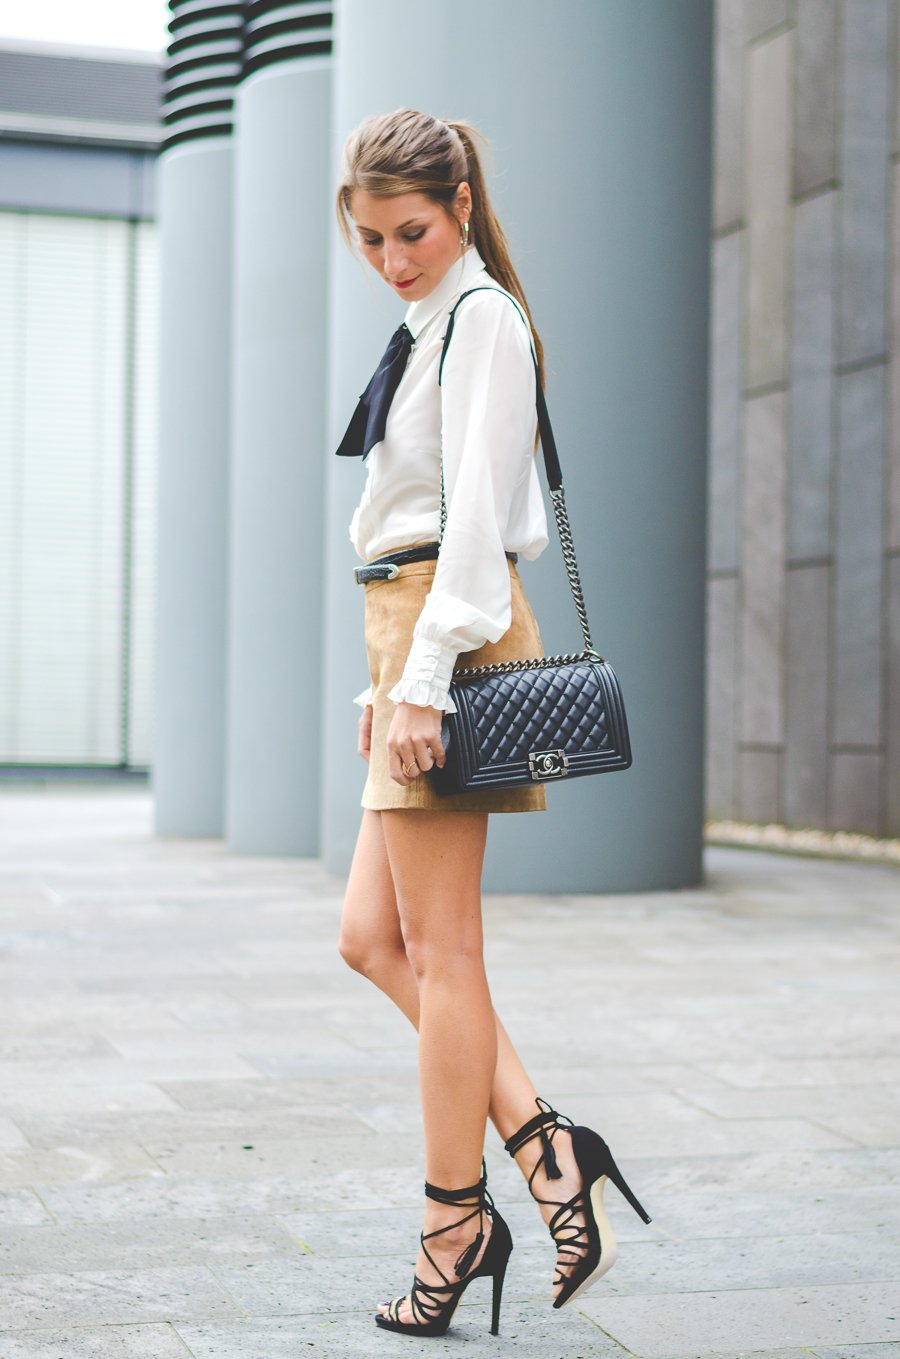 bow tie blouse leatherskirt chanel boy bag lace up heels outfit